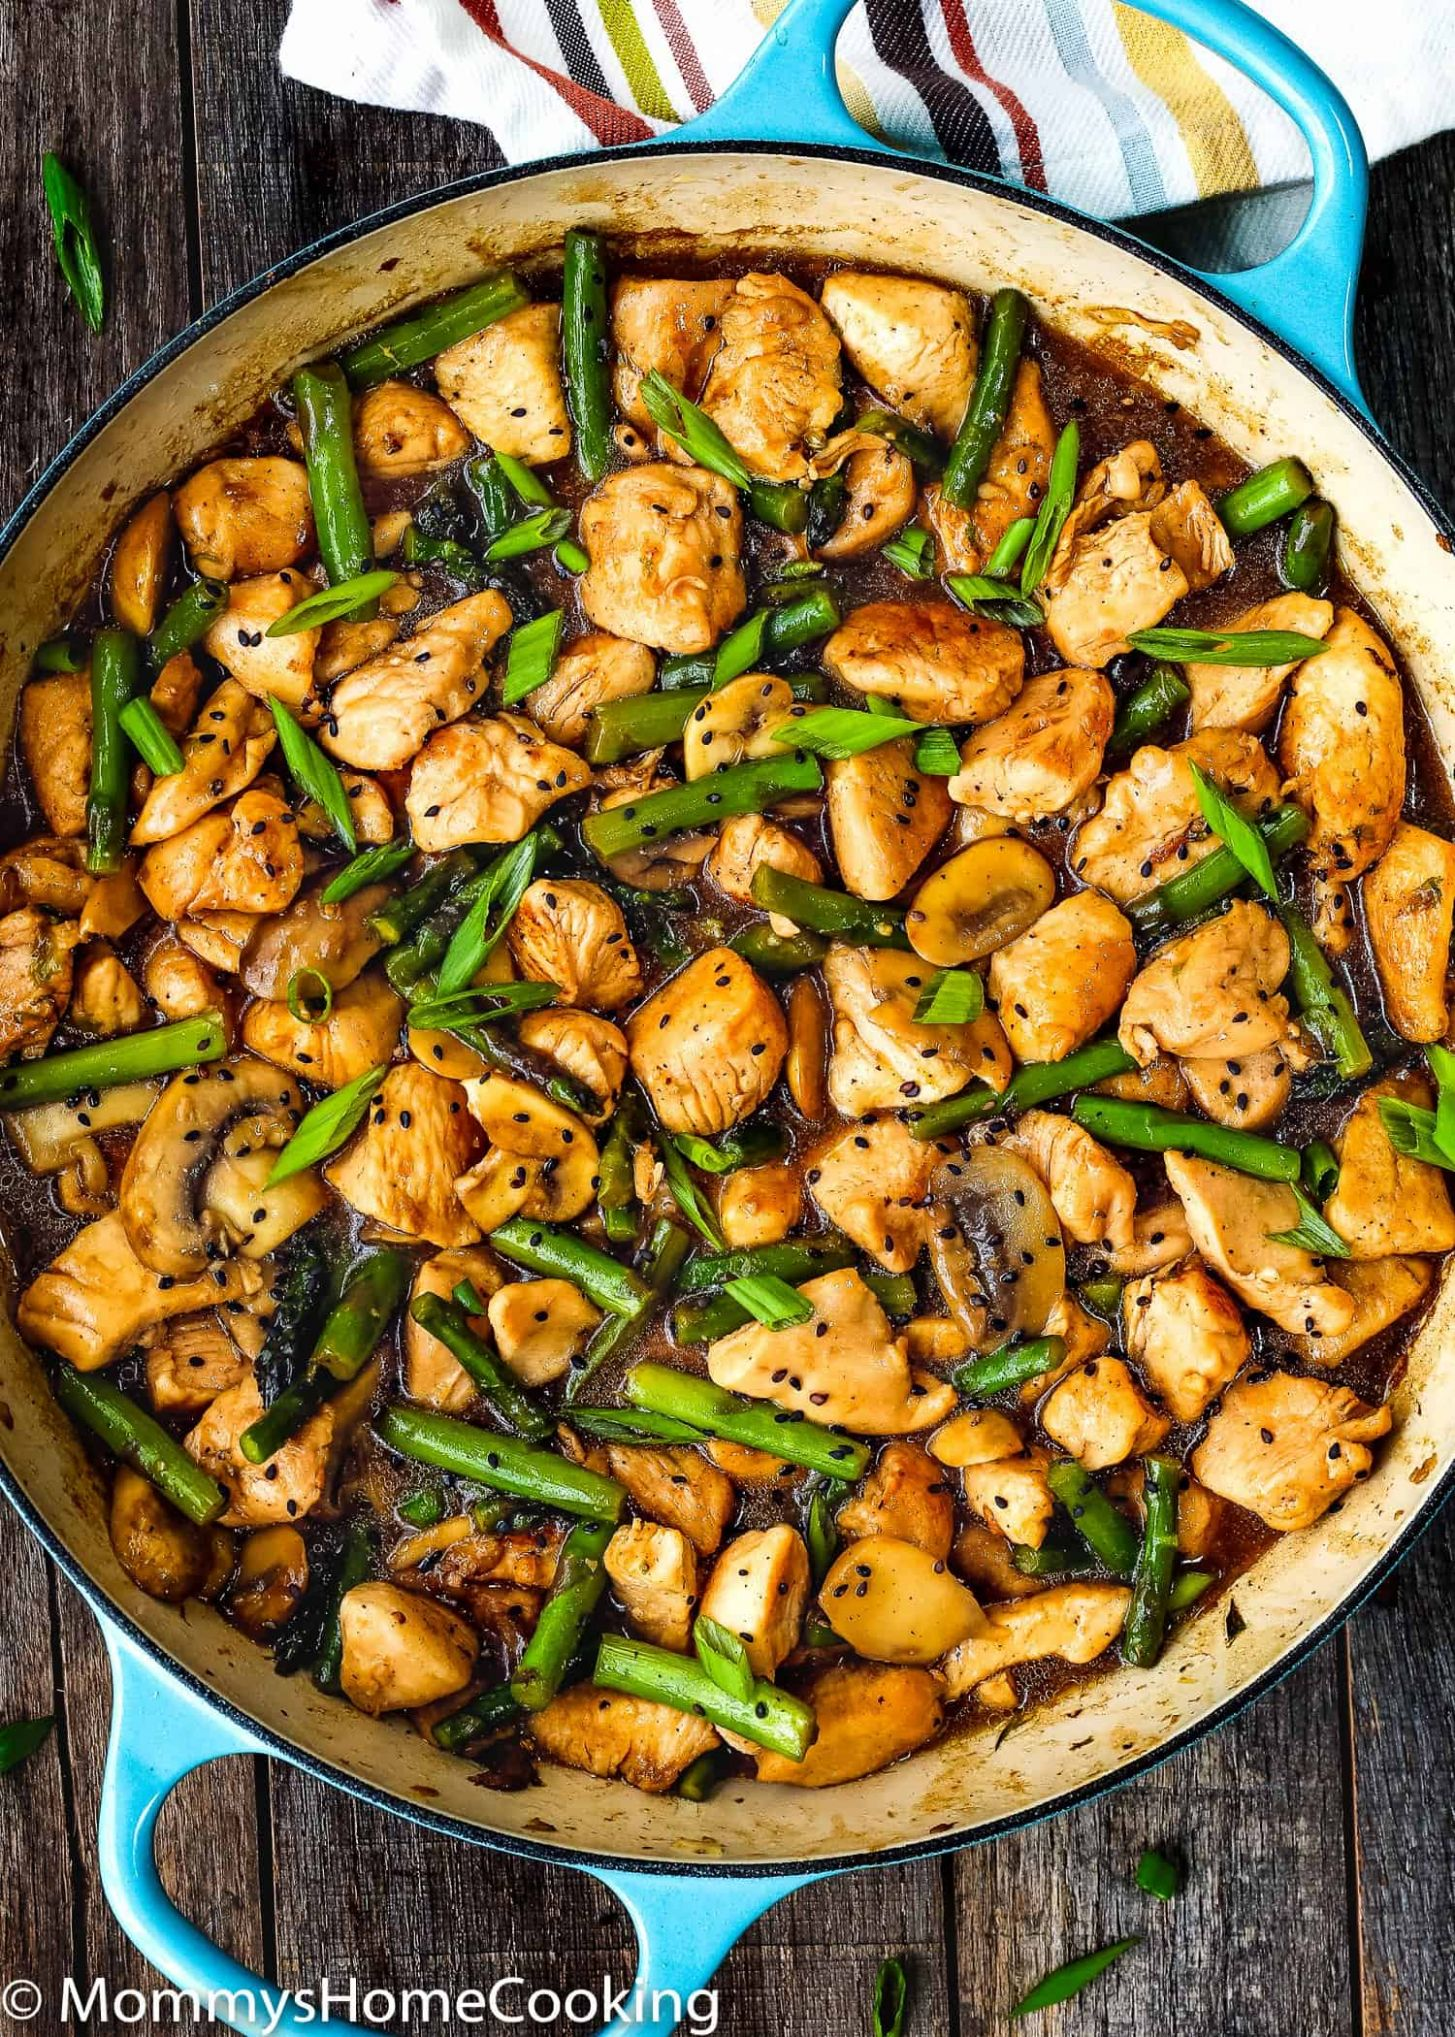 Easy Healthy Chicken and Asparagus Skillet - Simple Recipes Chicken